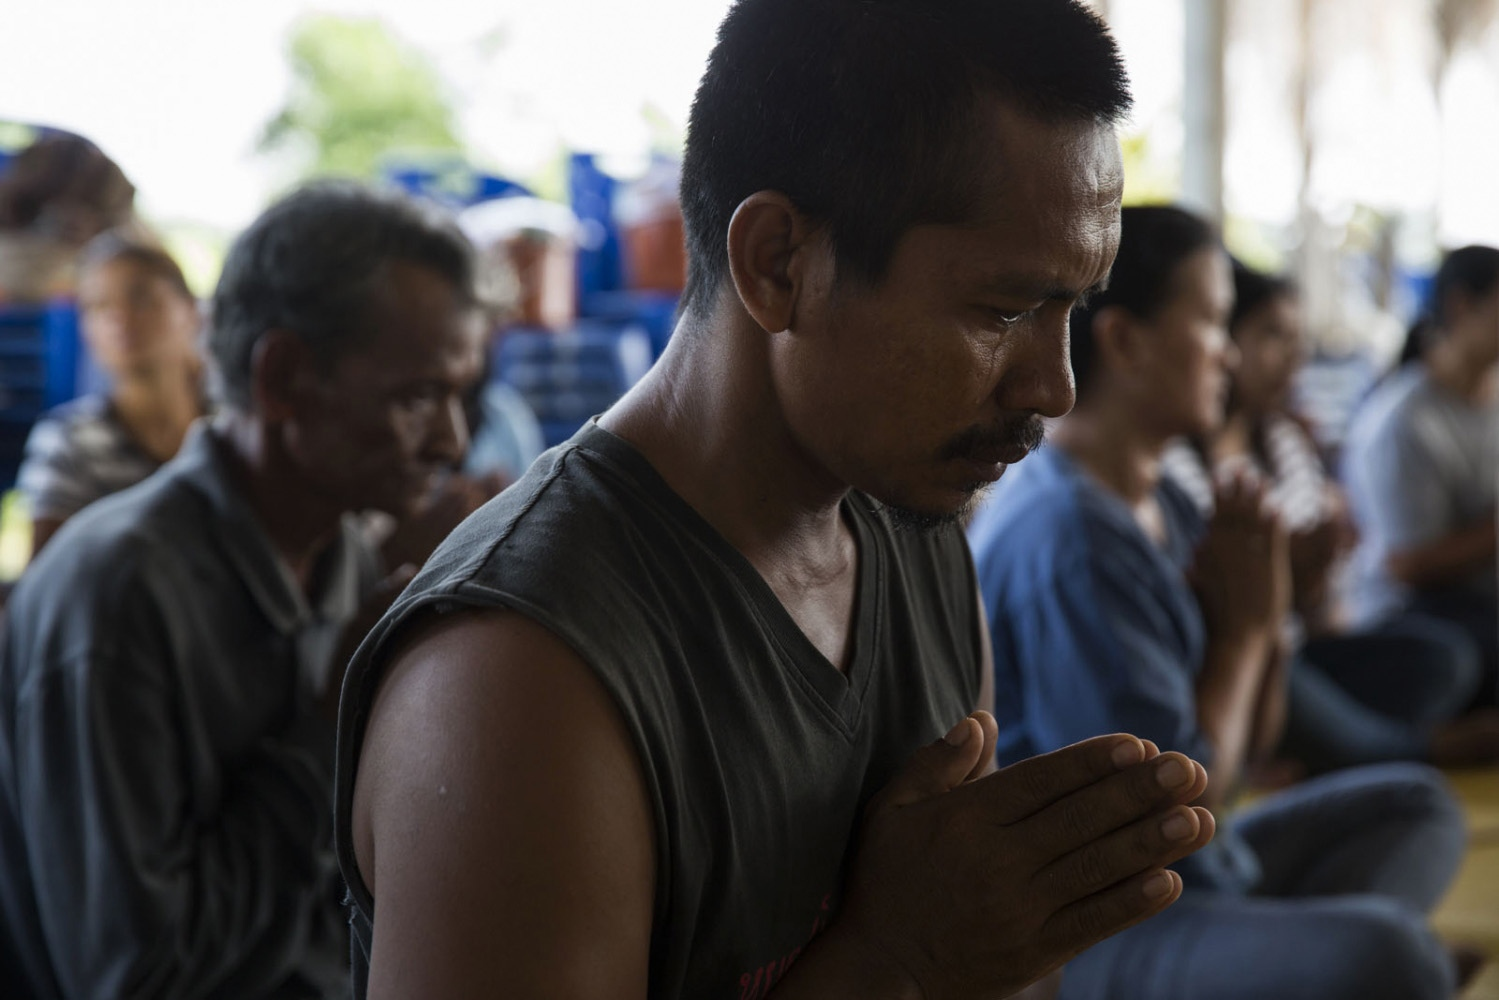 Supot Kalasong, 42, cries during a Buddhist monk ceremony at the village to mark the anniversary of those who had been killed. In April 2016 Mr Kansong himself was shot by an assassin who had been waiting for him to drive past as he returned to the village. He remarkably survived.